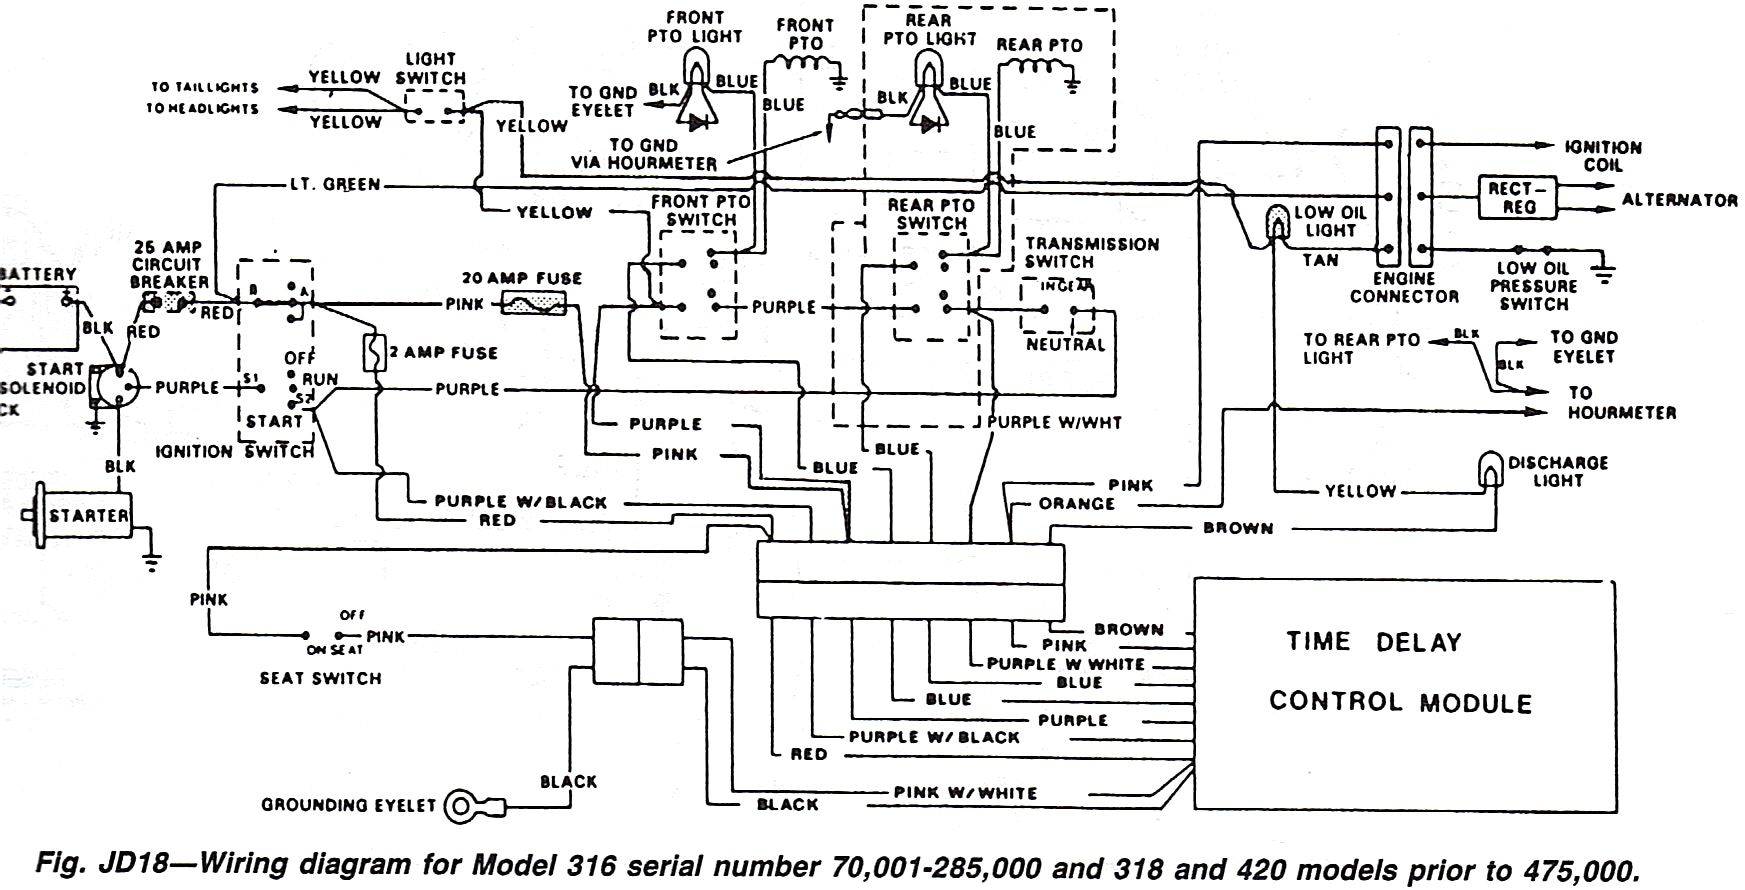 John Deere 111 Wiring Diagram Pdf | Wiring Diagram on john deere diagnostic codes, john deere parts diagrams, john deere radio wiring diagram, john deere ignition switch wiring, john deere parts specifications, john deere solenoid wiring, john deere solenoid schematics, john deere maintenance schedule,